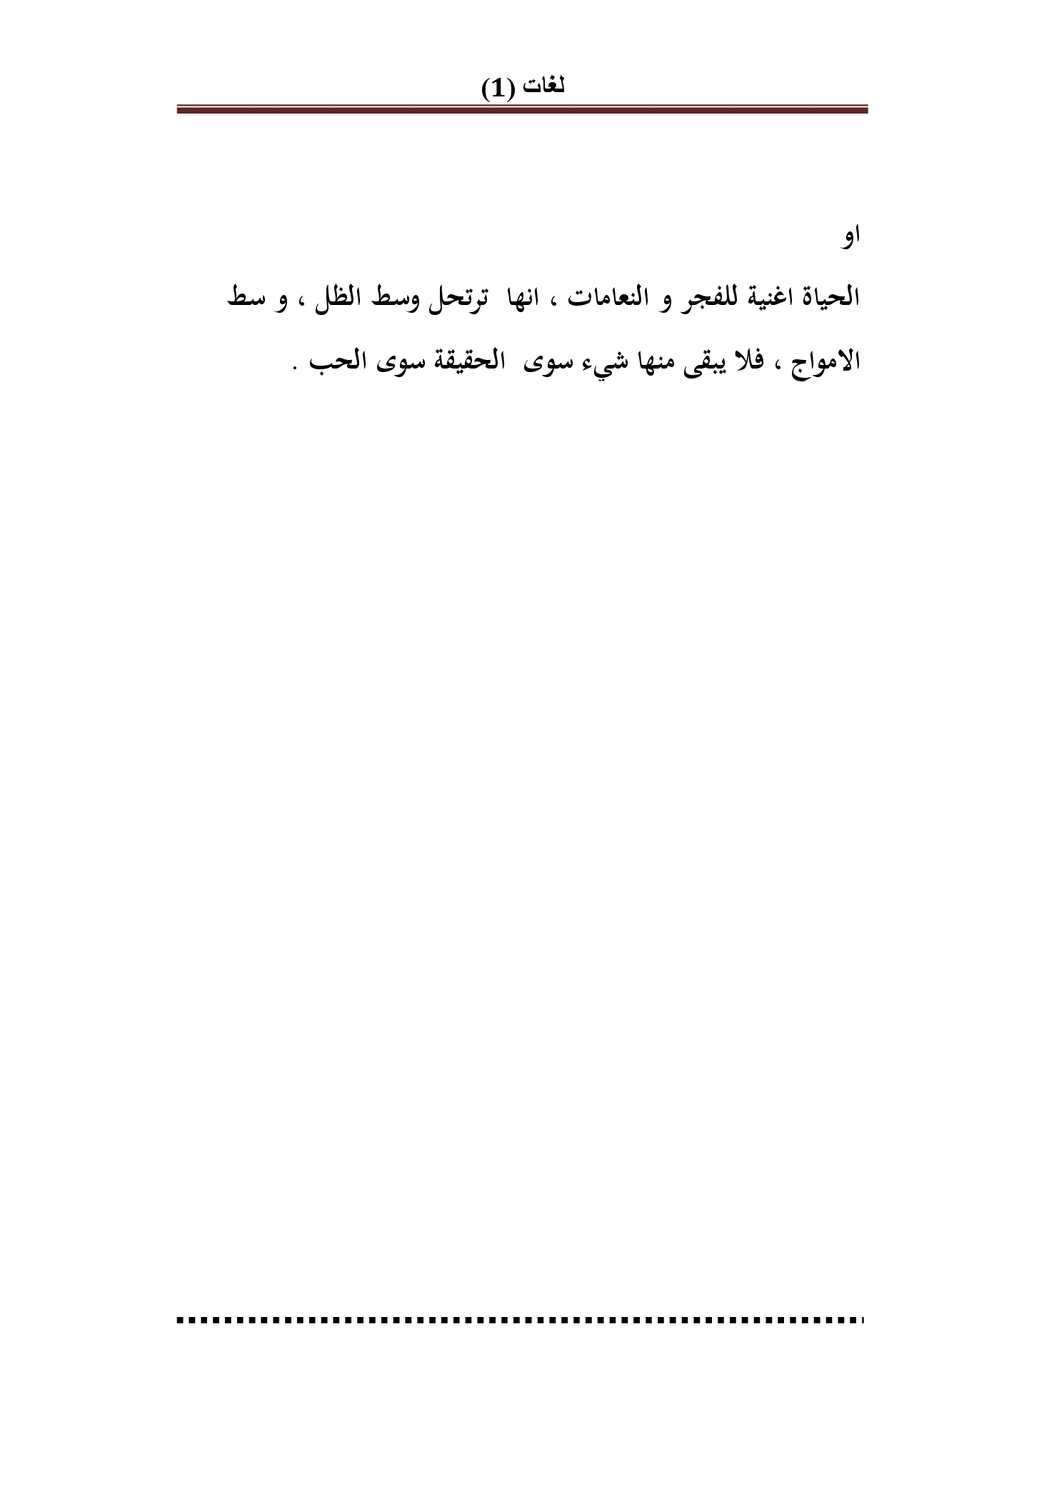 Page 137